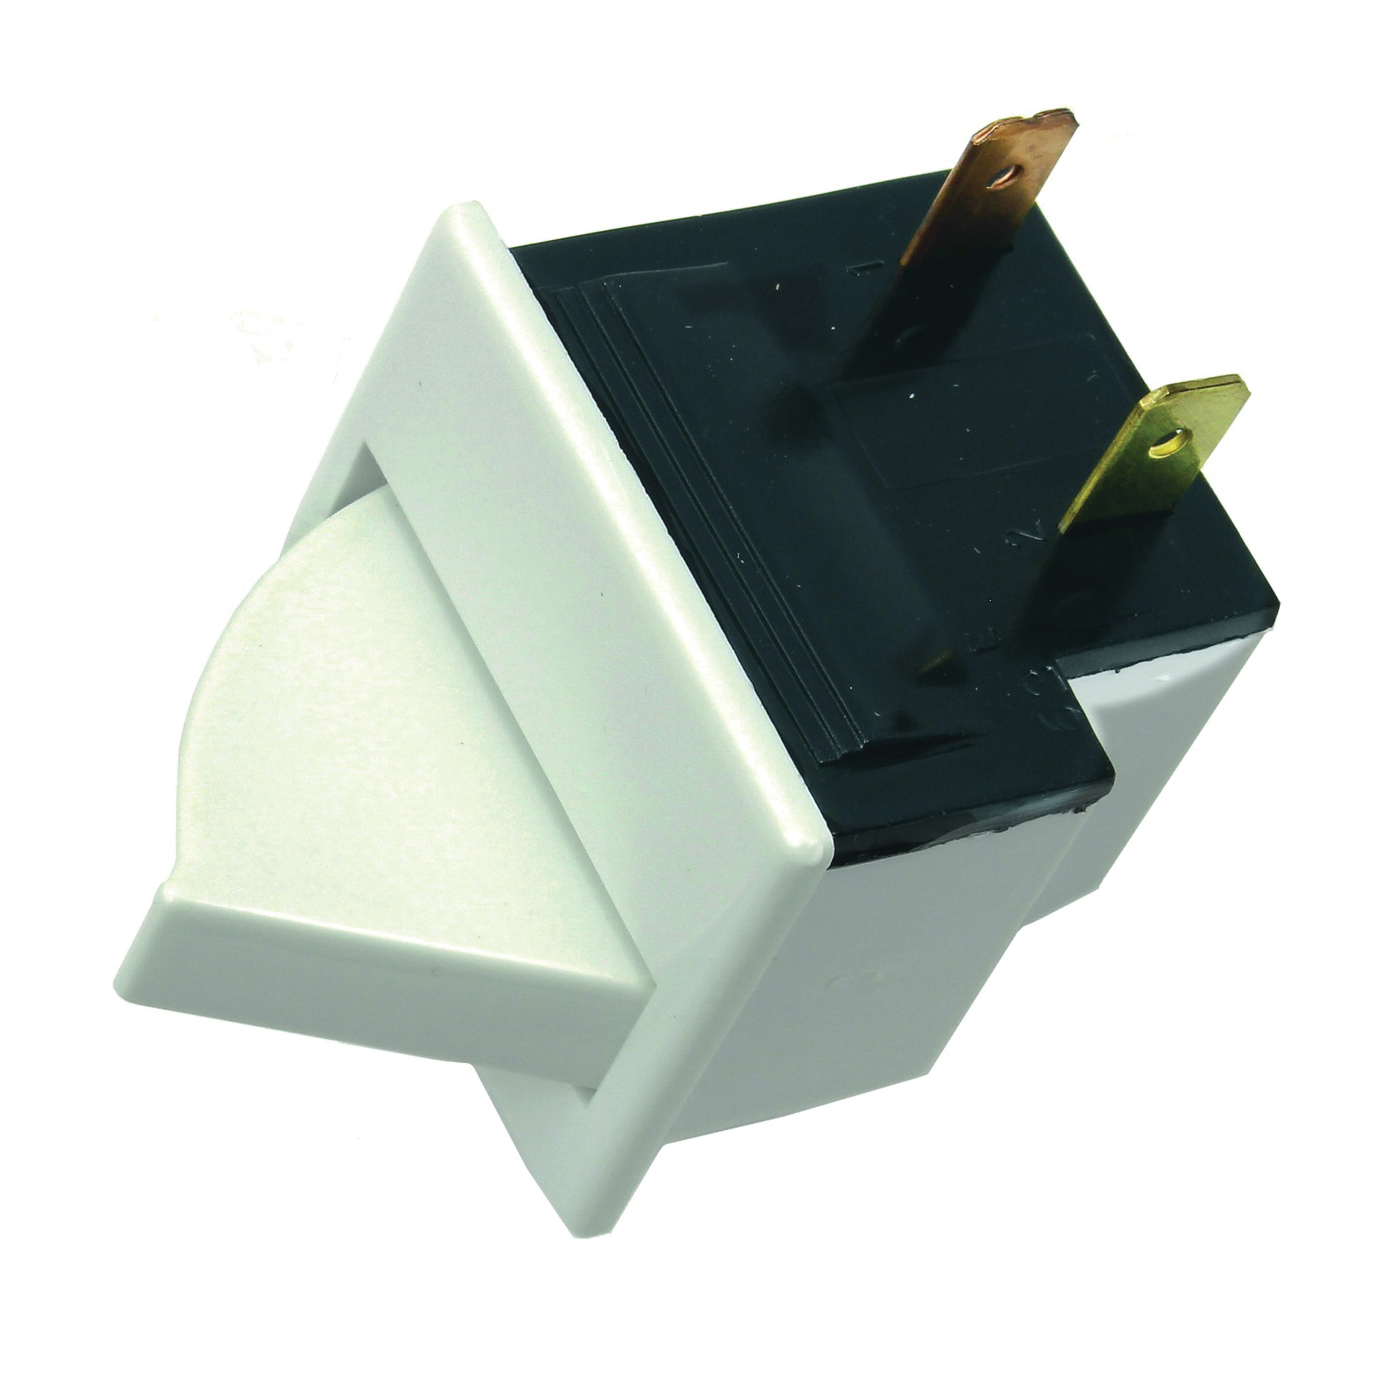 Picture of Jandorf 61008 Rocker Switch, 5 A, 250 V, SPST, Tab Terminal